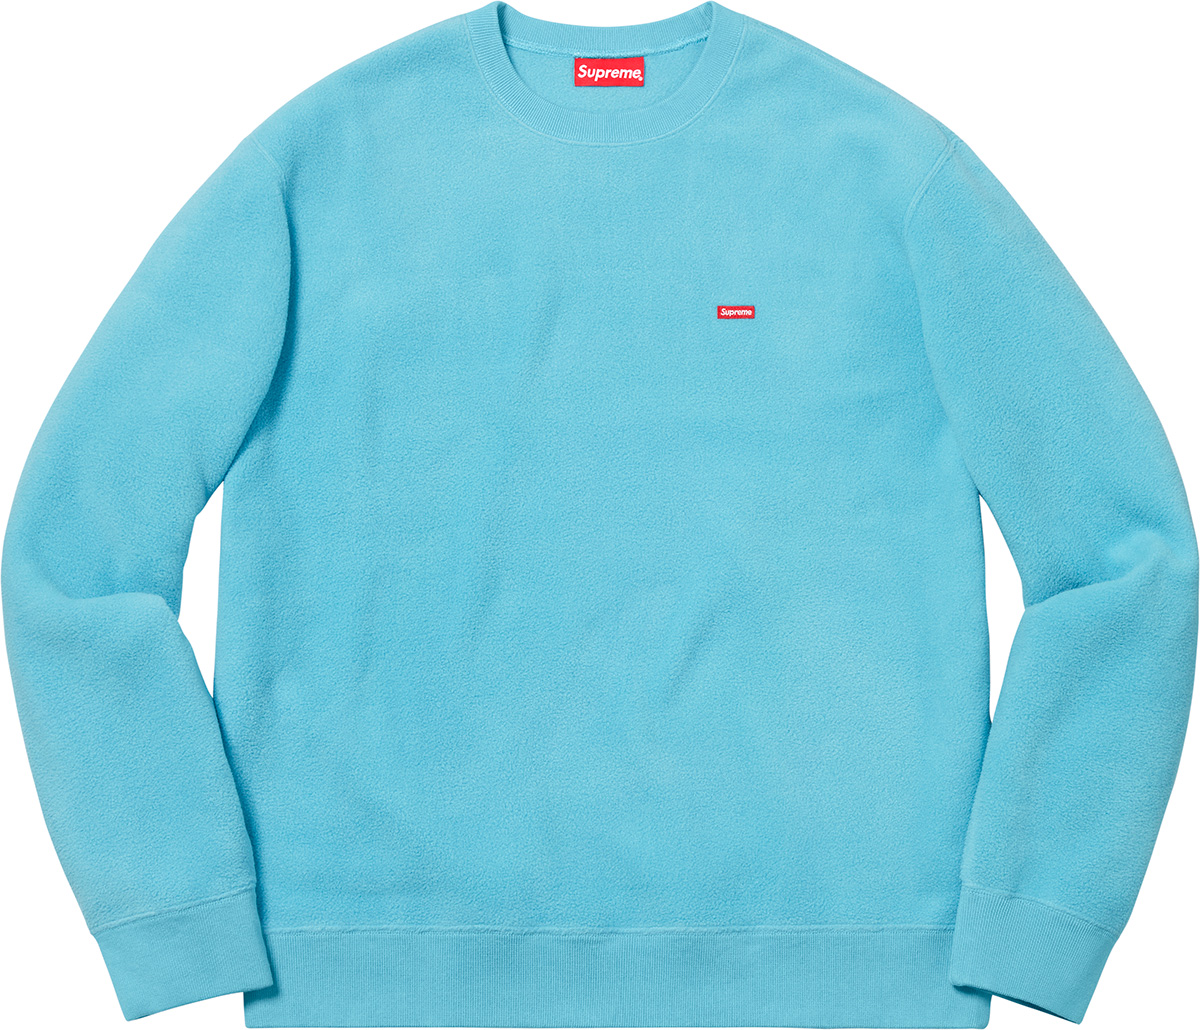 supreme-18aw-fall-winter-polartec-small-box-crewneck-sweatshirt